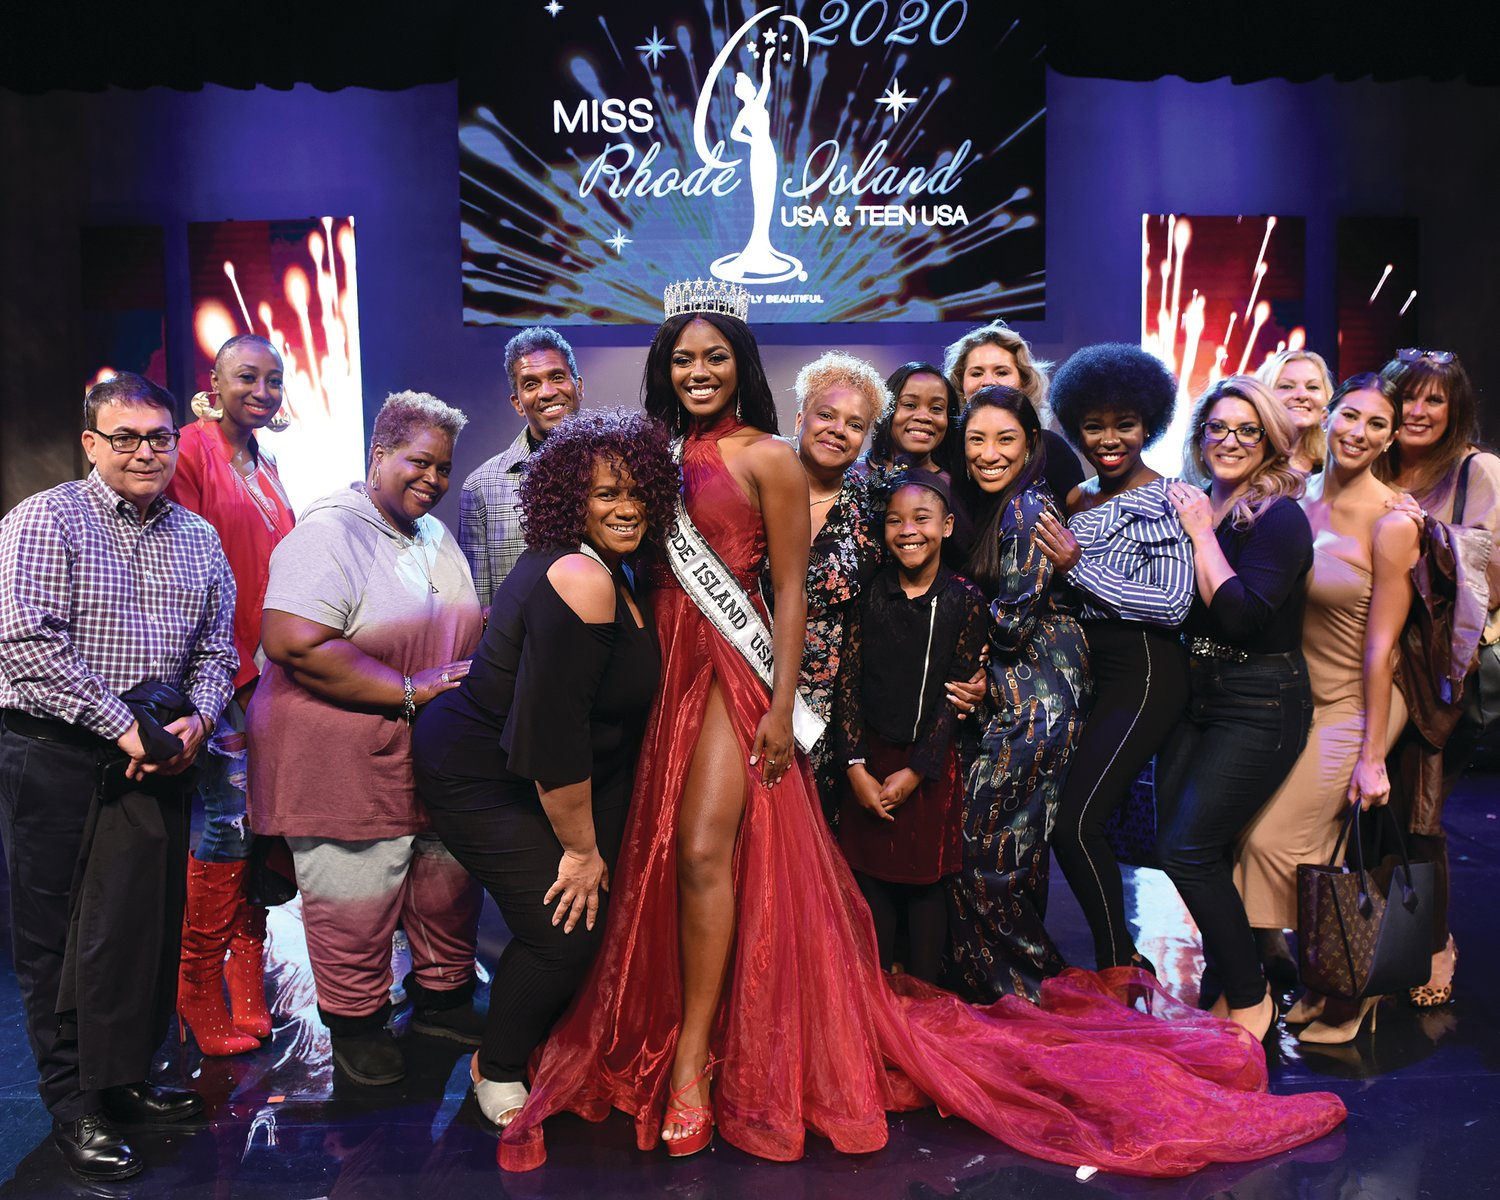 SHOWING SUPPORT: Jonét Nichelle was surrounded by supporters after winning Miss Rhode Island USA. She heads to Memphis on Halloween for the final competition in November.